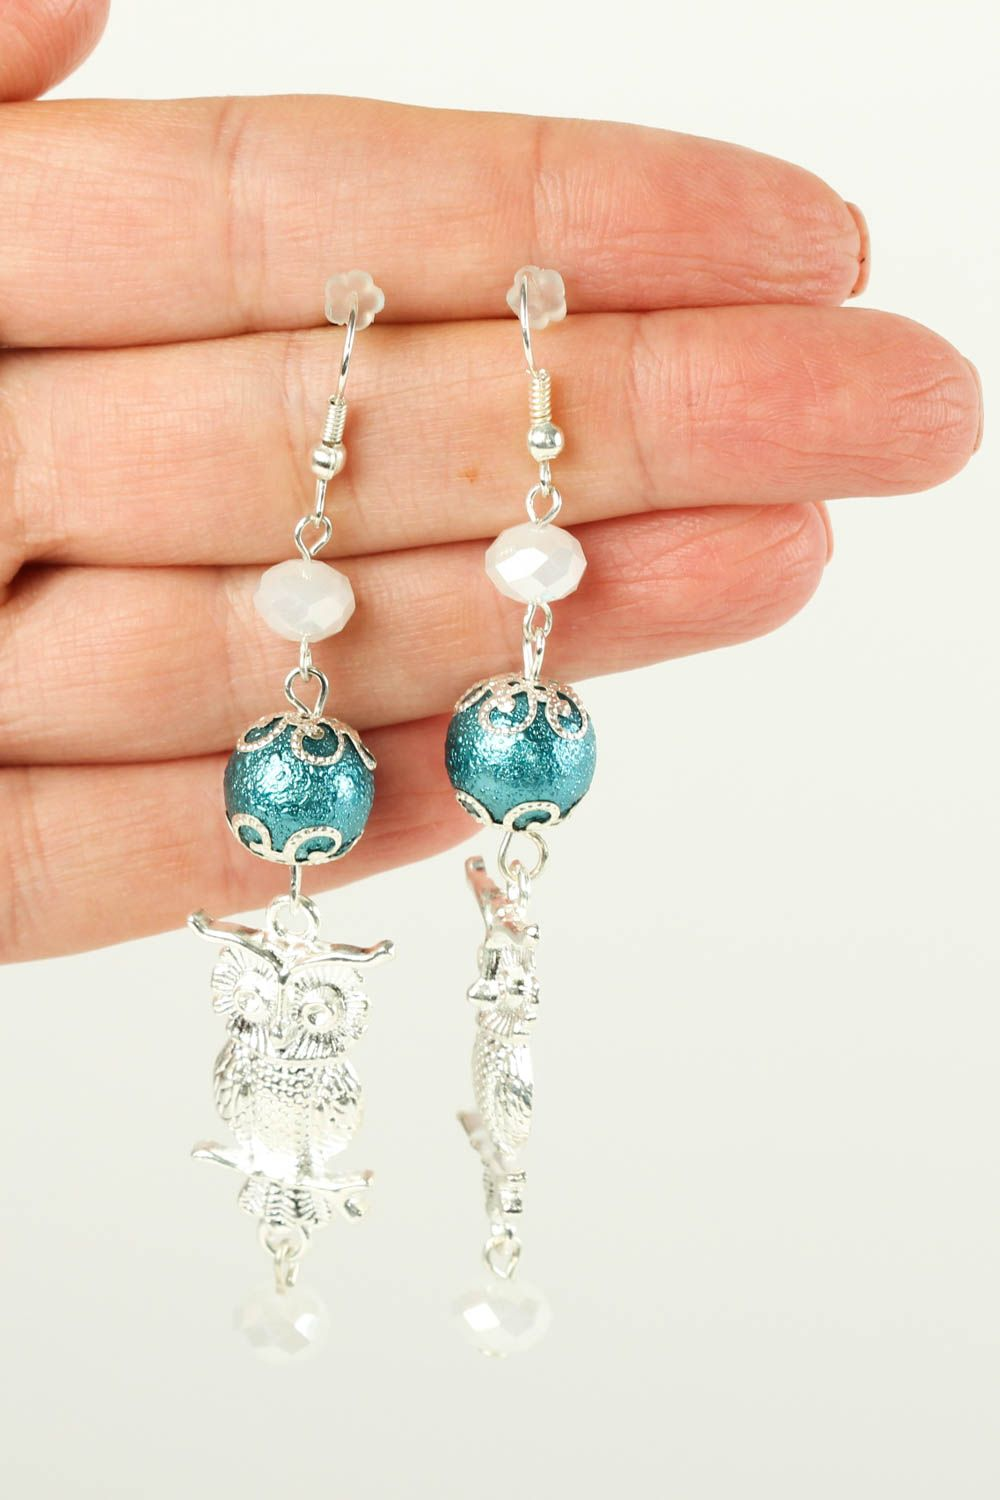 Handmade earrings designer earrings gift ideas beaded jewelry for women photo 5